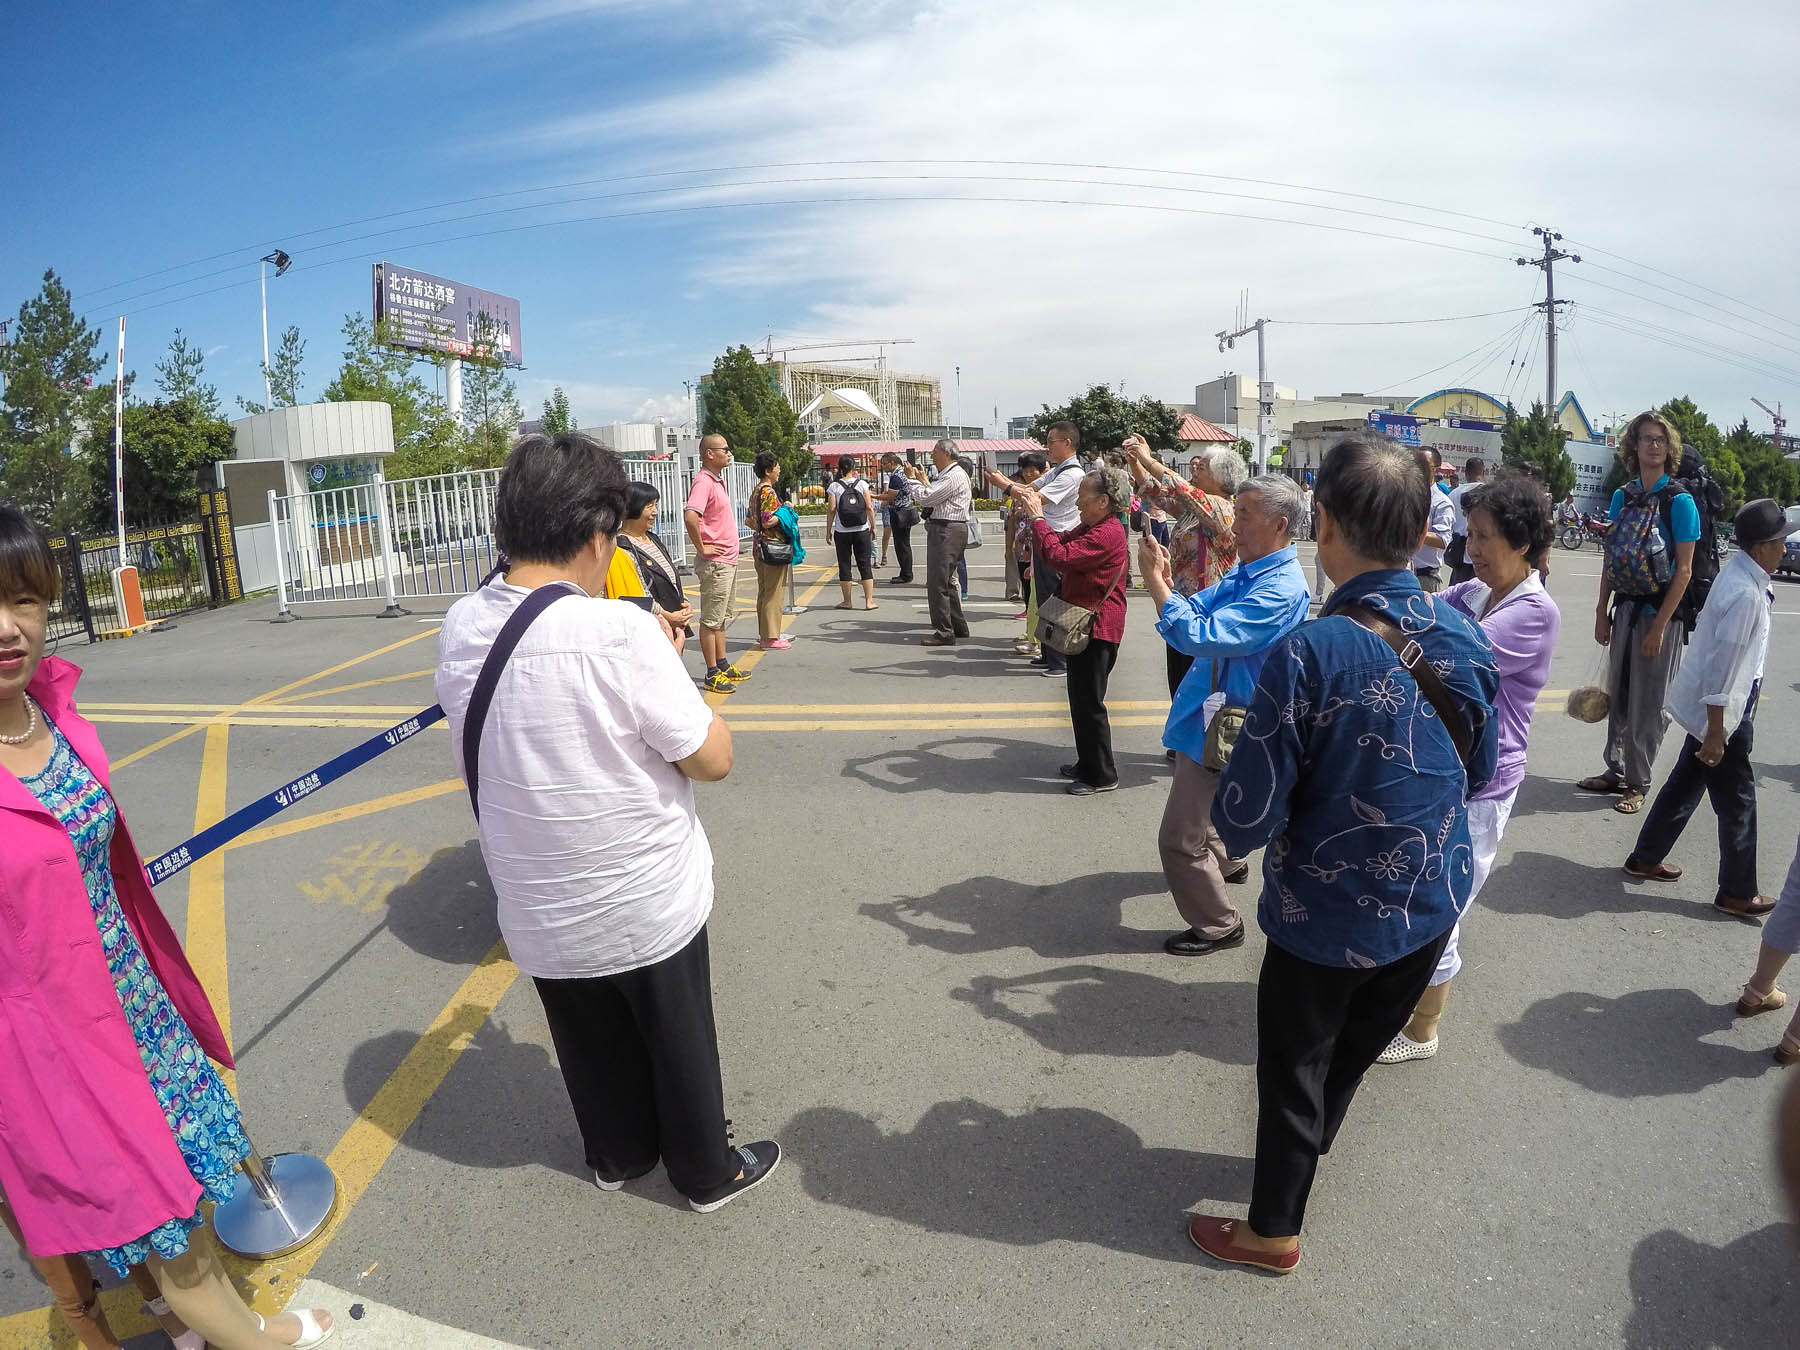 Chinese tourists at the China - Kazakhstan border crossing at Khorgos.